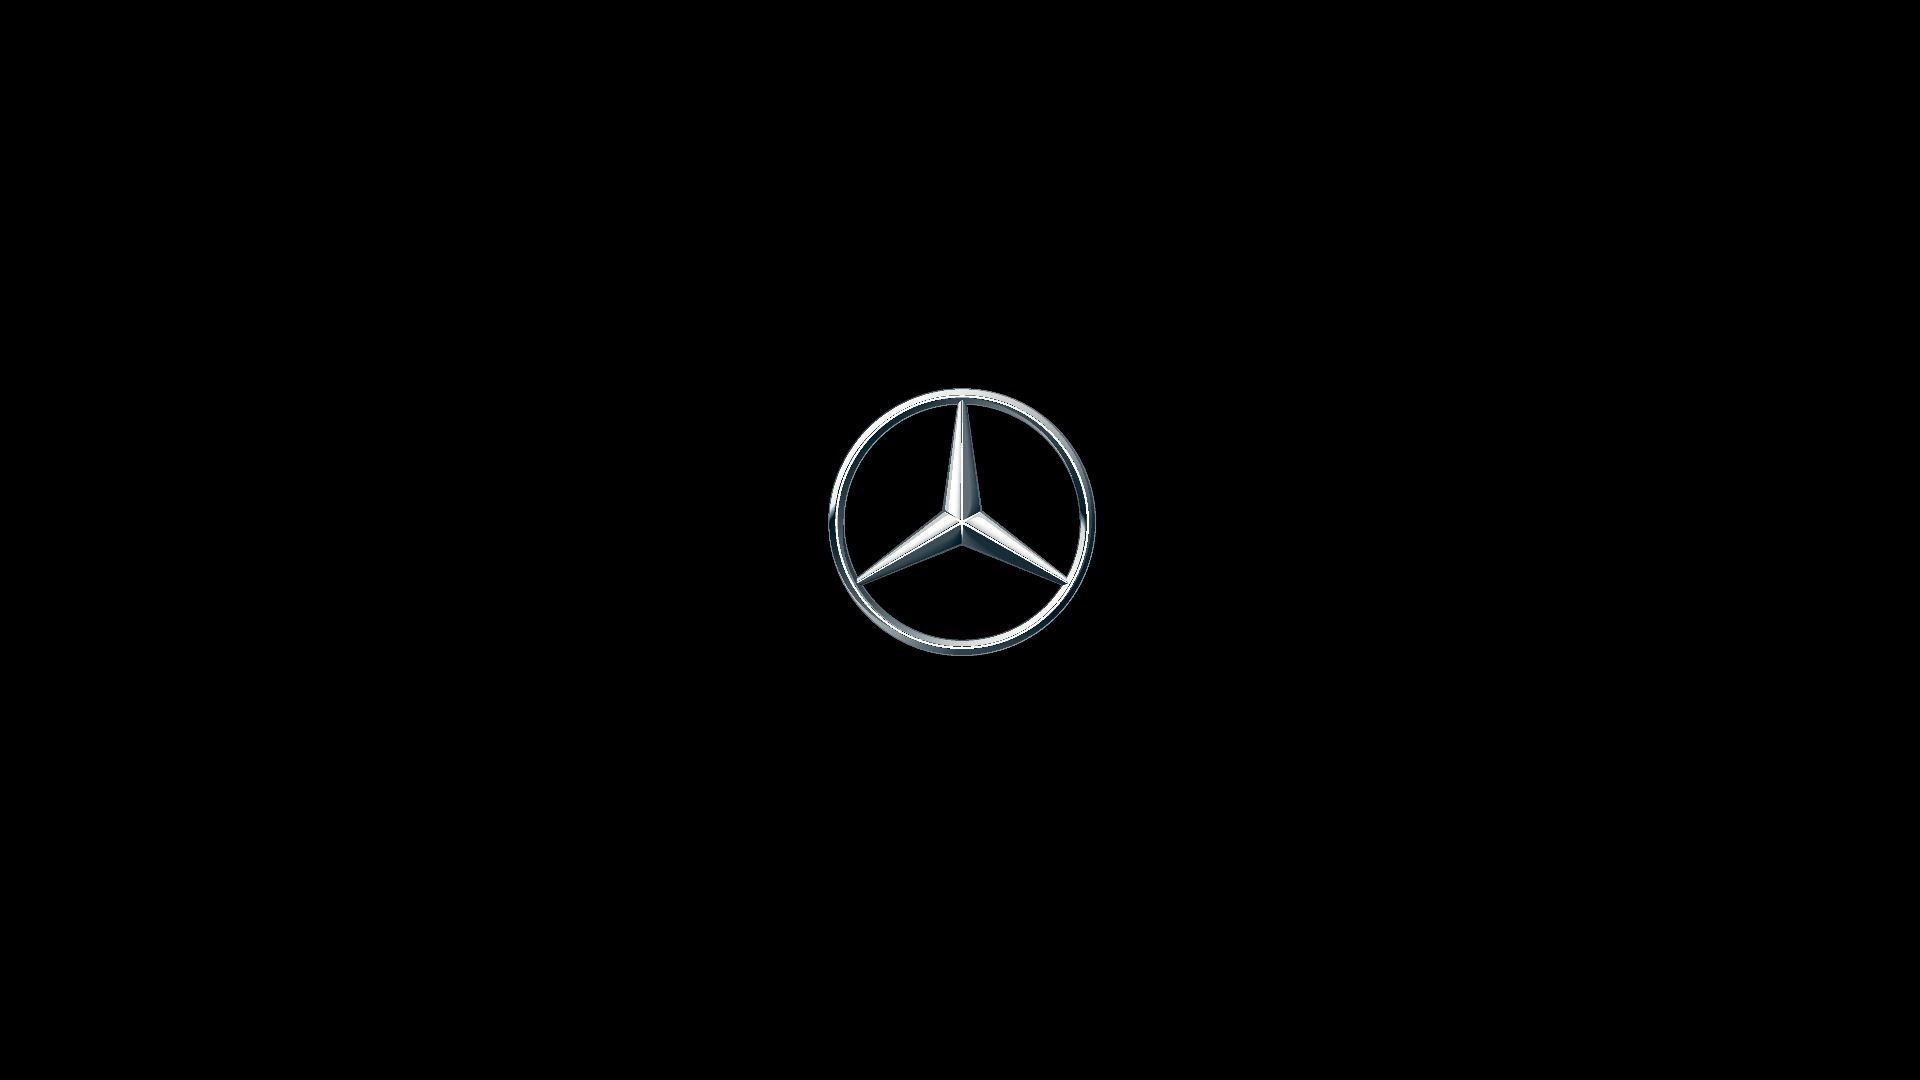 New Mercedes Benz Logo Wallpaper For Iphone To Download Wallpaper Mercedes Logo Mercedes Benz Logo Mercedes Benz Wallpaper